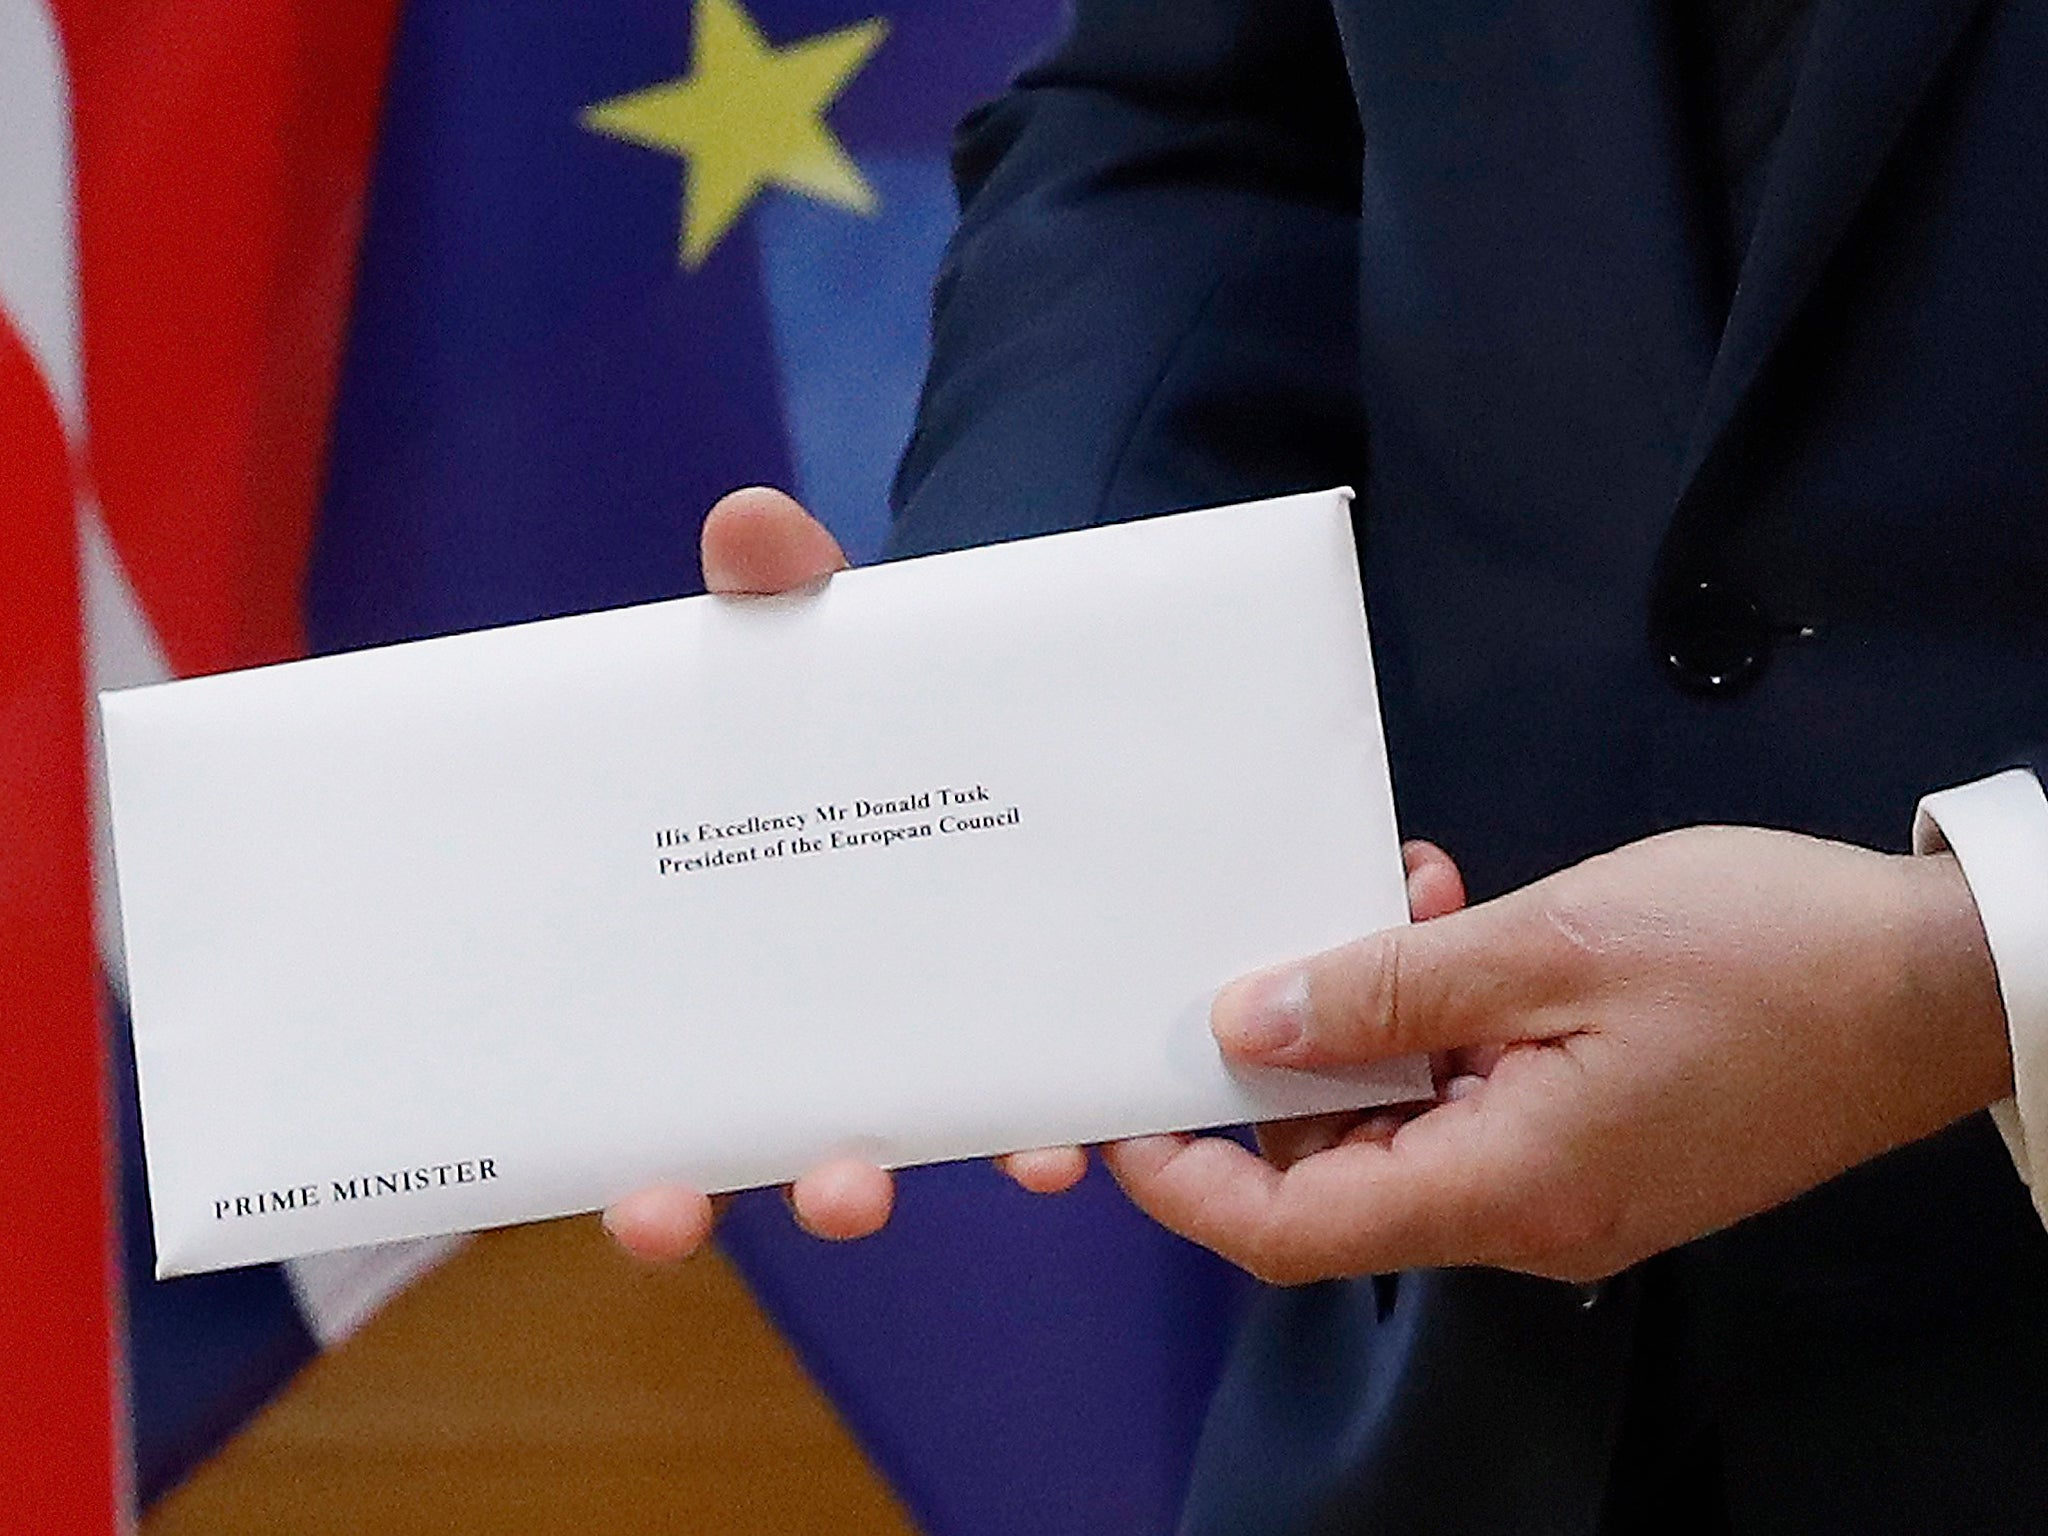 Article 50 letter: Read Theresa May's full message to the EU as Brexit begins